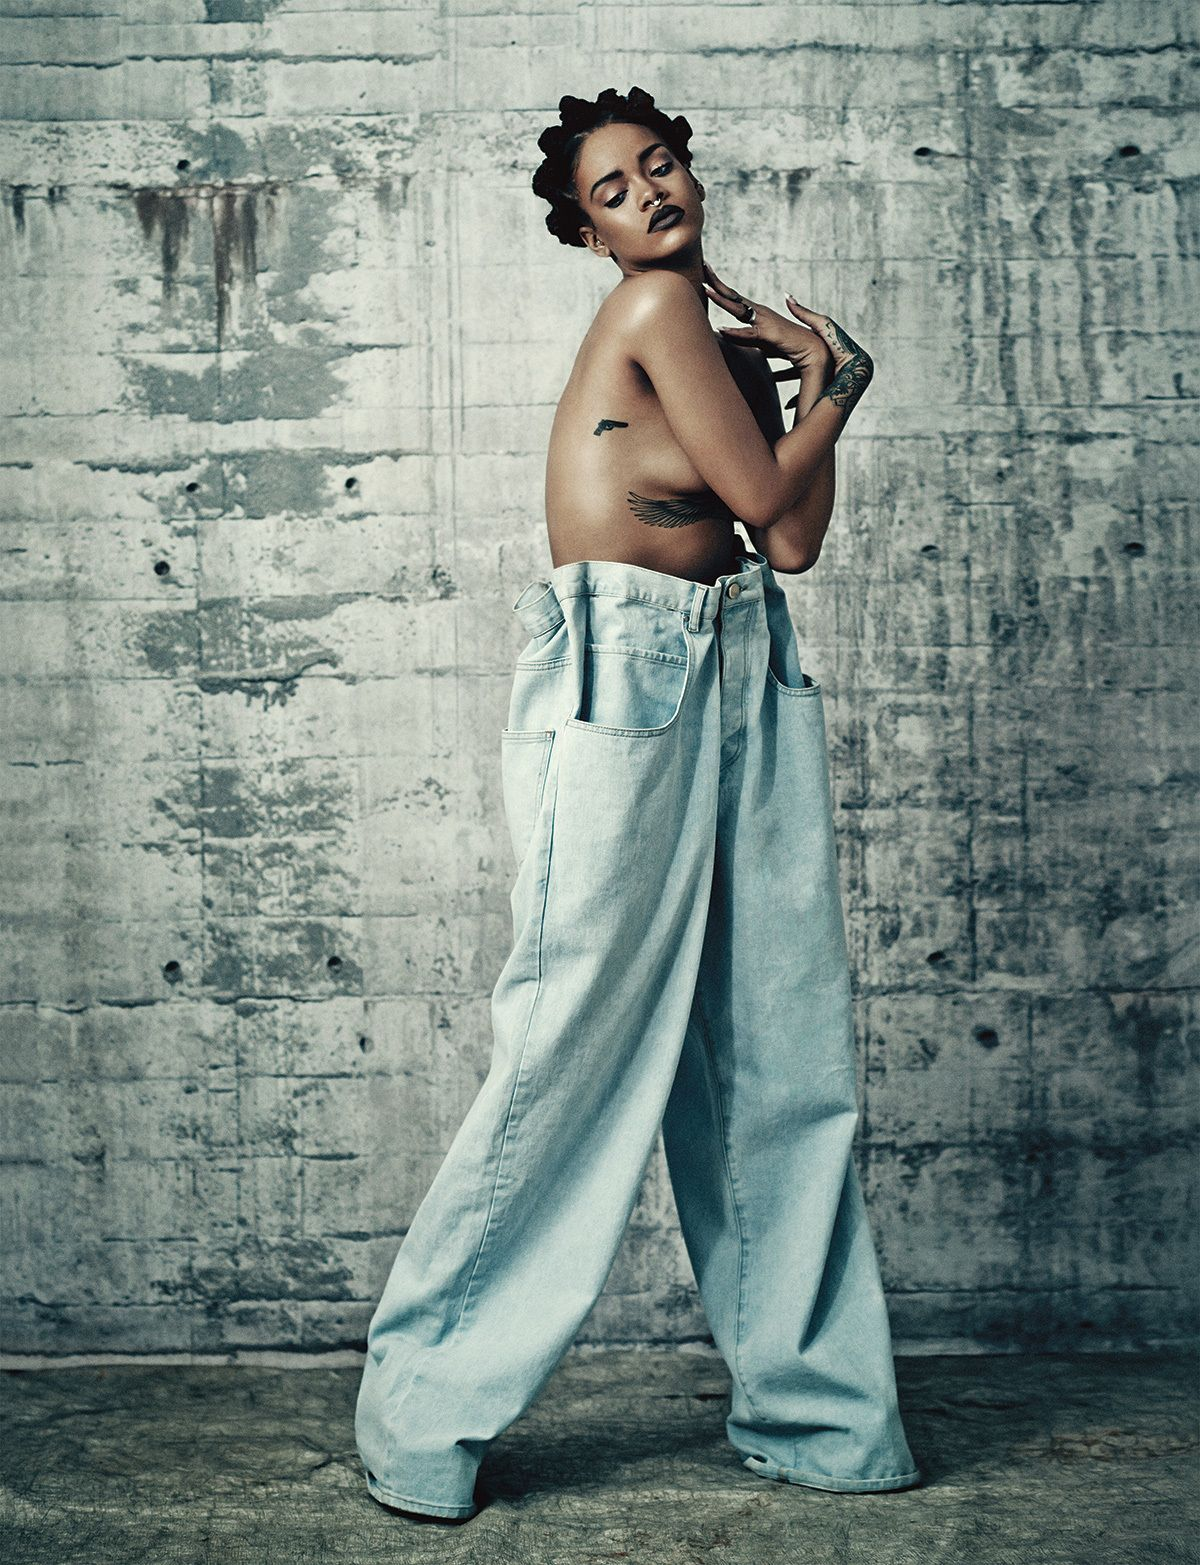 Exclusive Rihannas Full Cover Shoot For The Music Issue